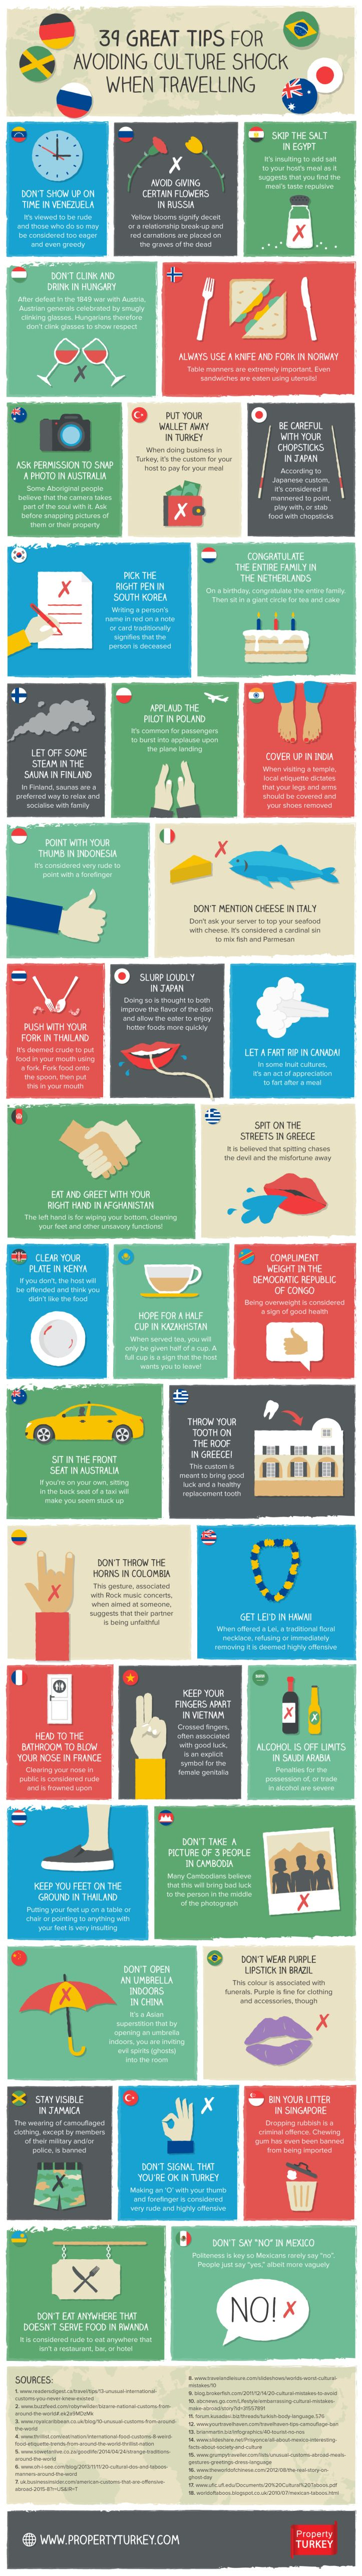 39 Great Tips For Avoiding Culture Shock When Travelling #Infographic